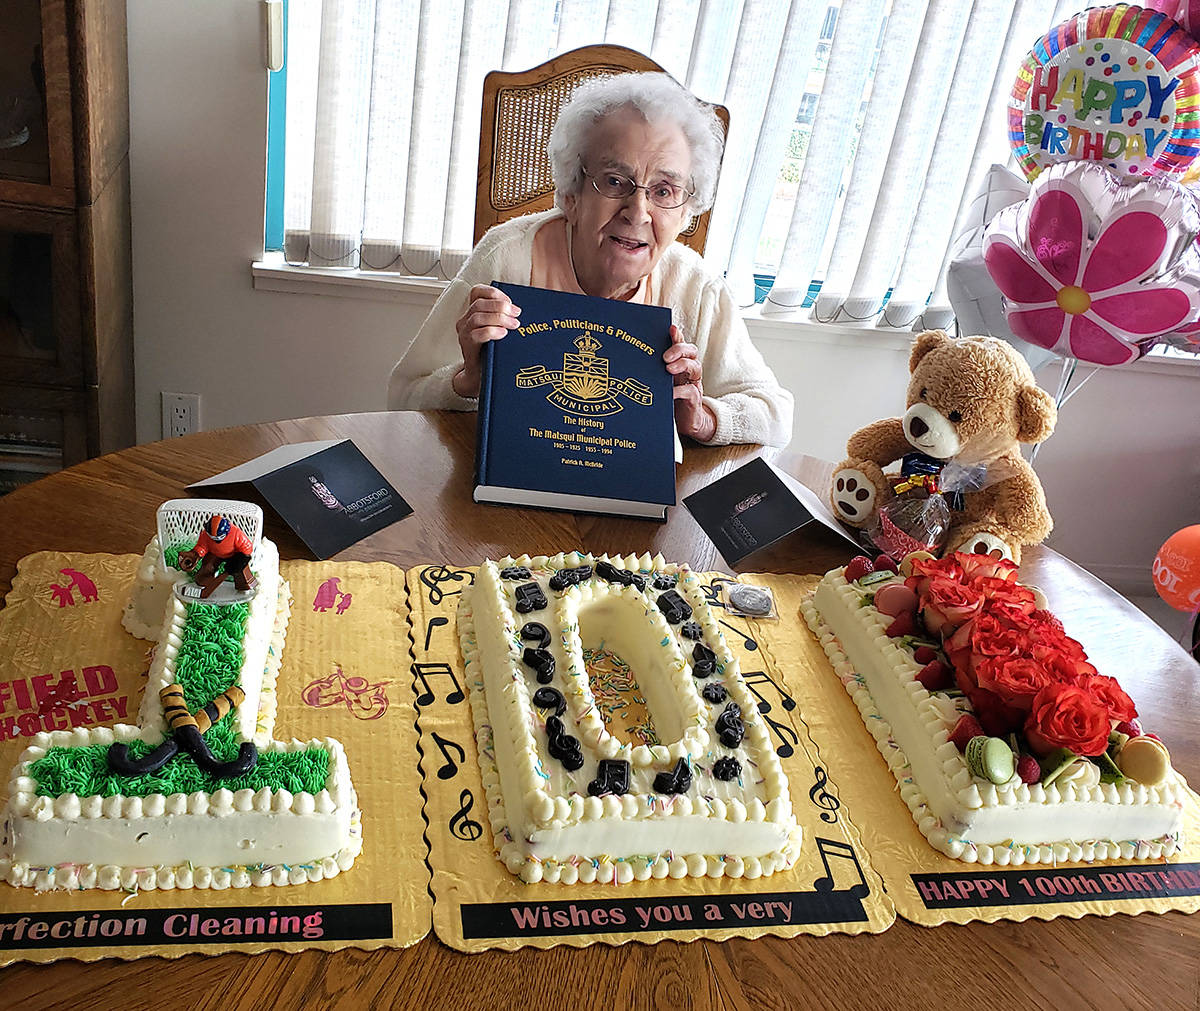 Among the items that Dorothy Agnew of Abbotsford received for her recent 100th birthday were gifts from the Abbotsford Police Department and a special cake. (Submitted photo)